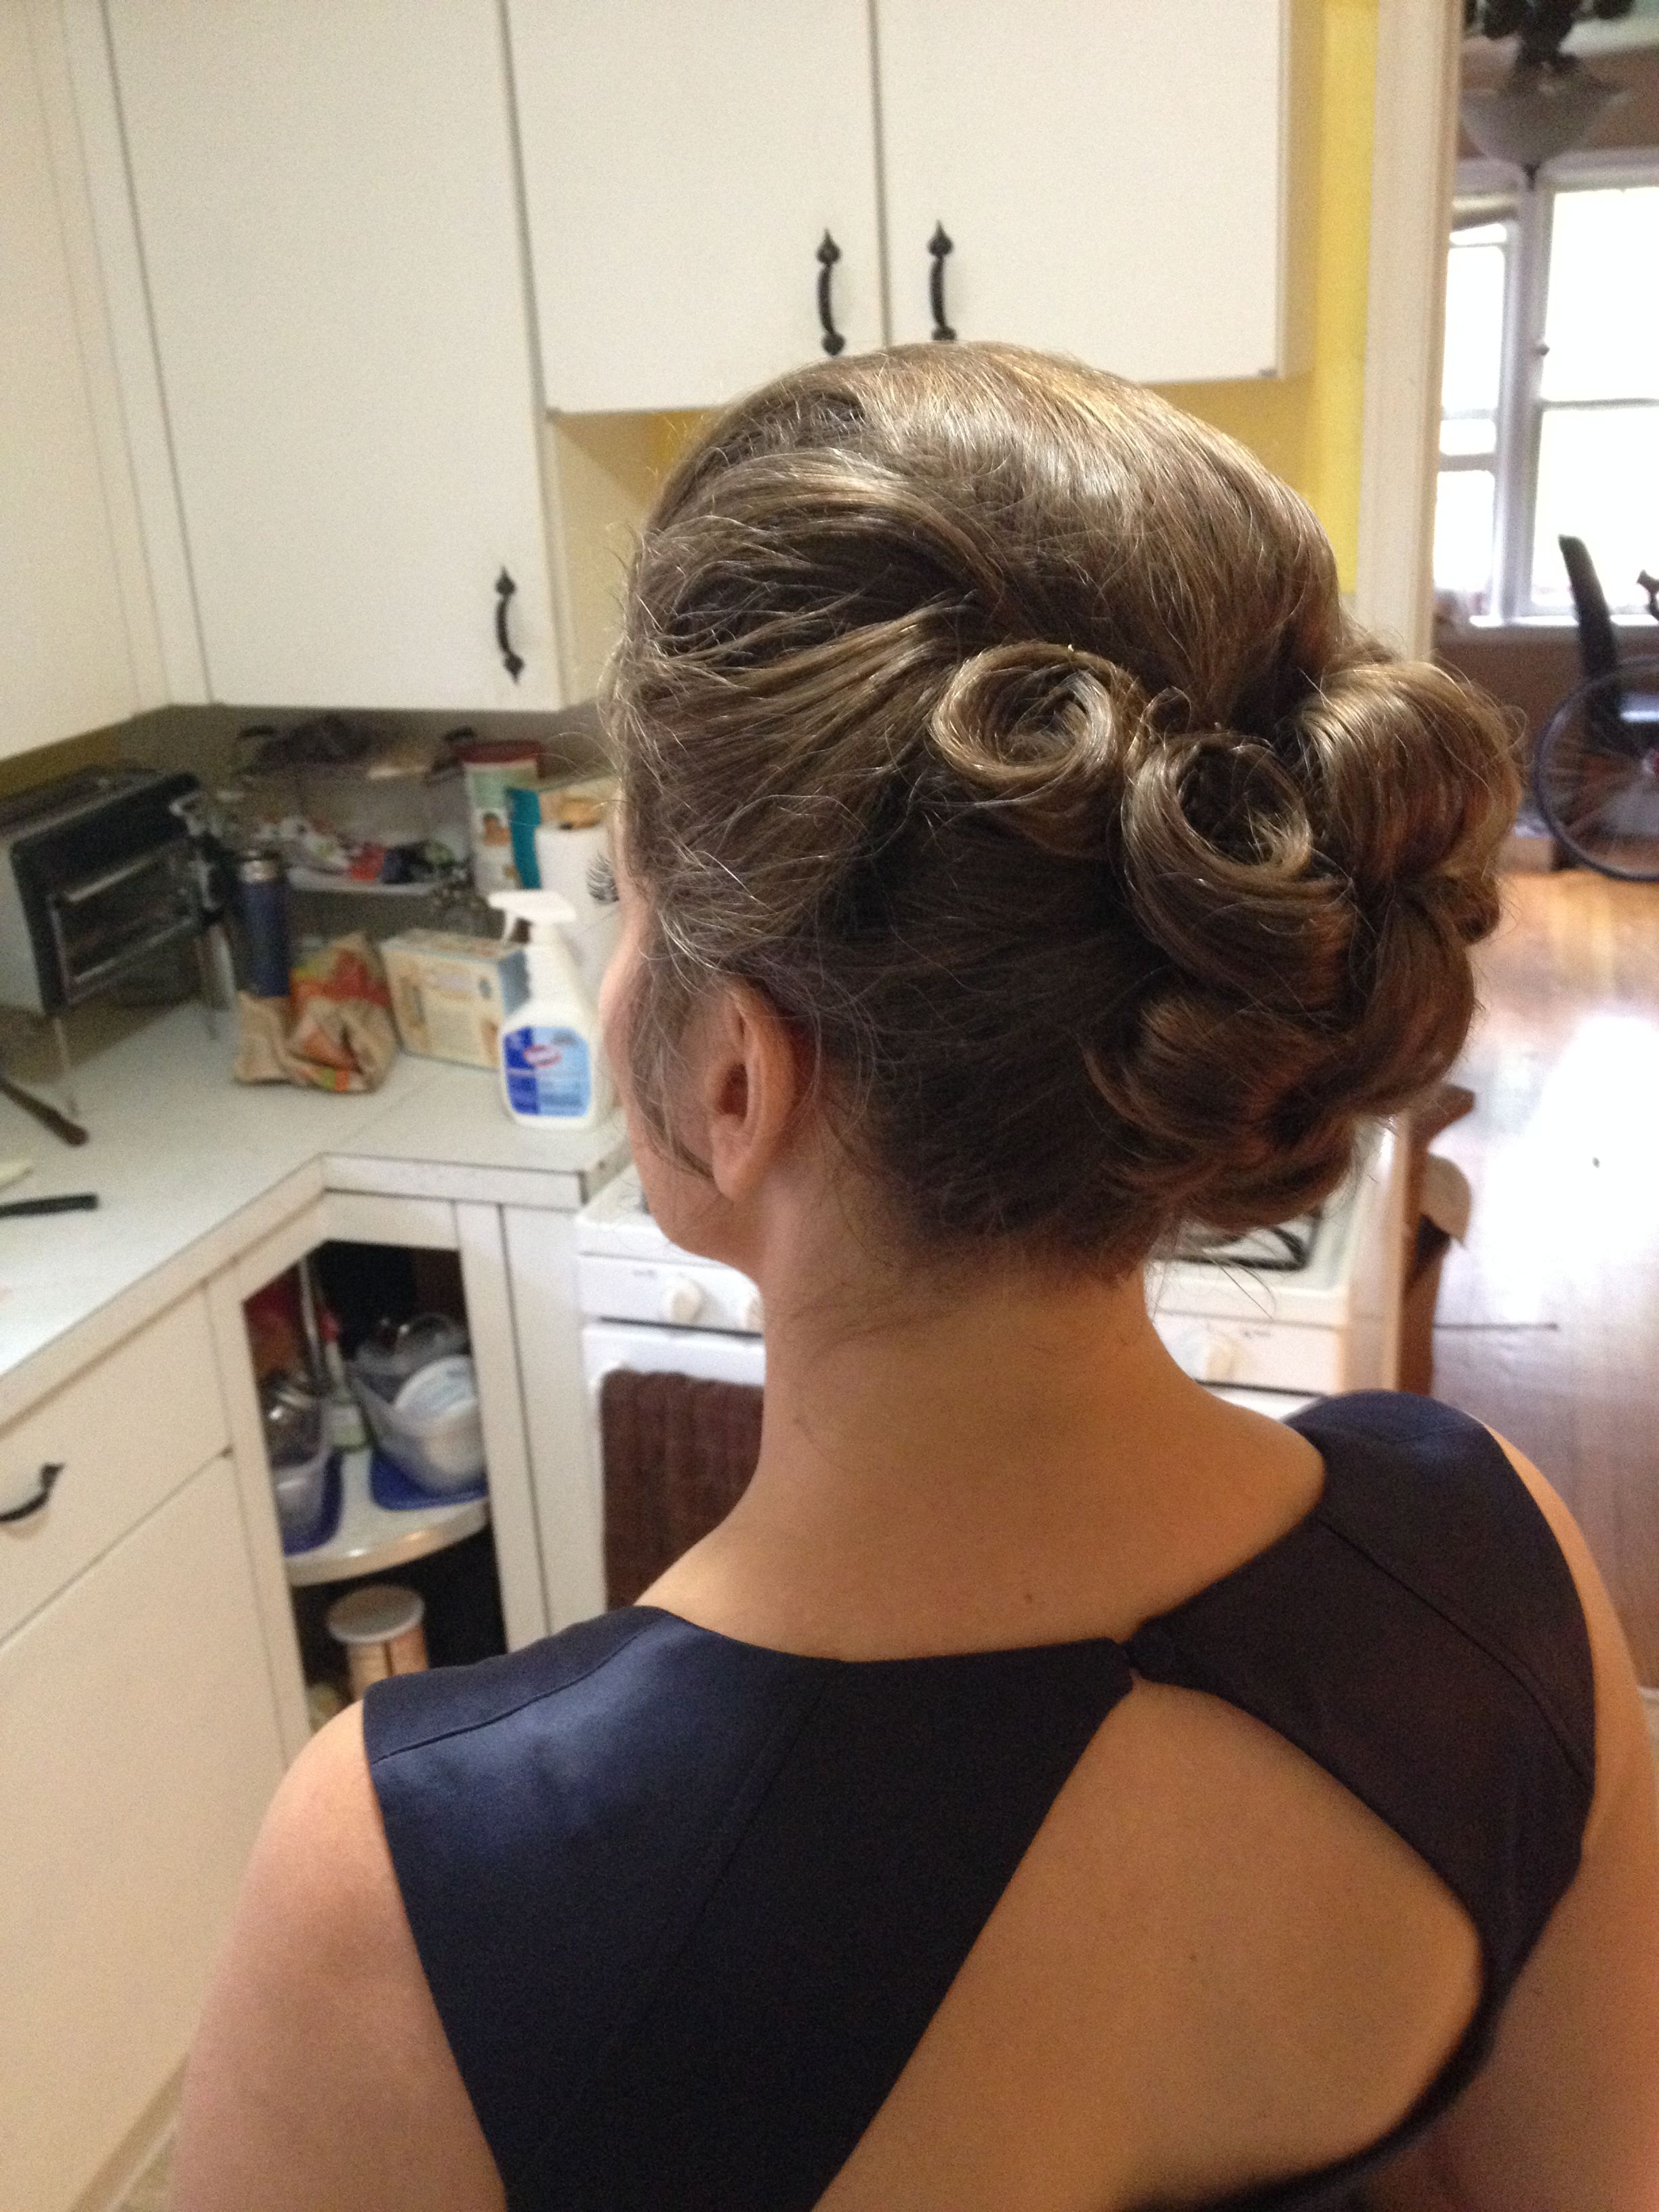 Latest Hairstyle 2018 For Women Pinterest Glamour Hair Up Dos